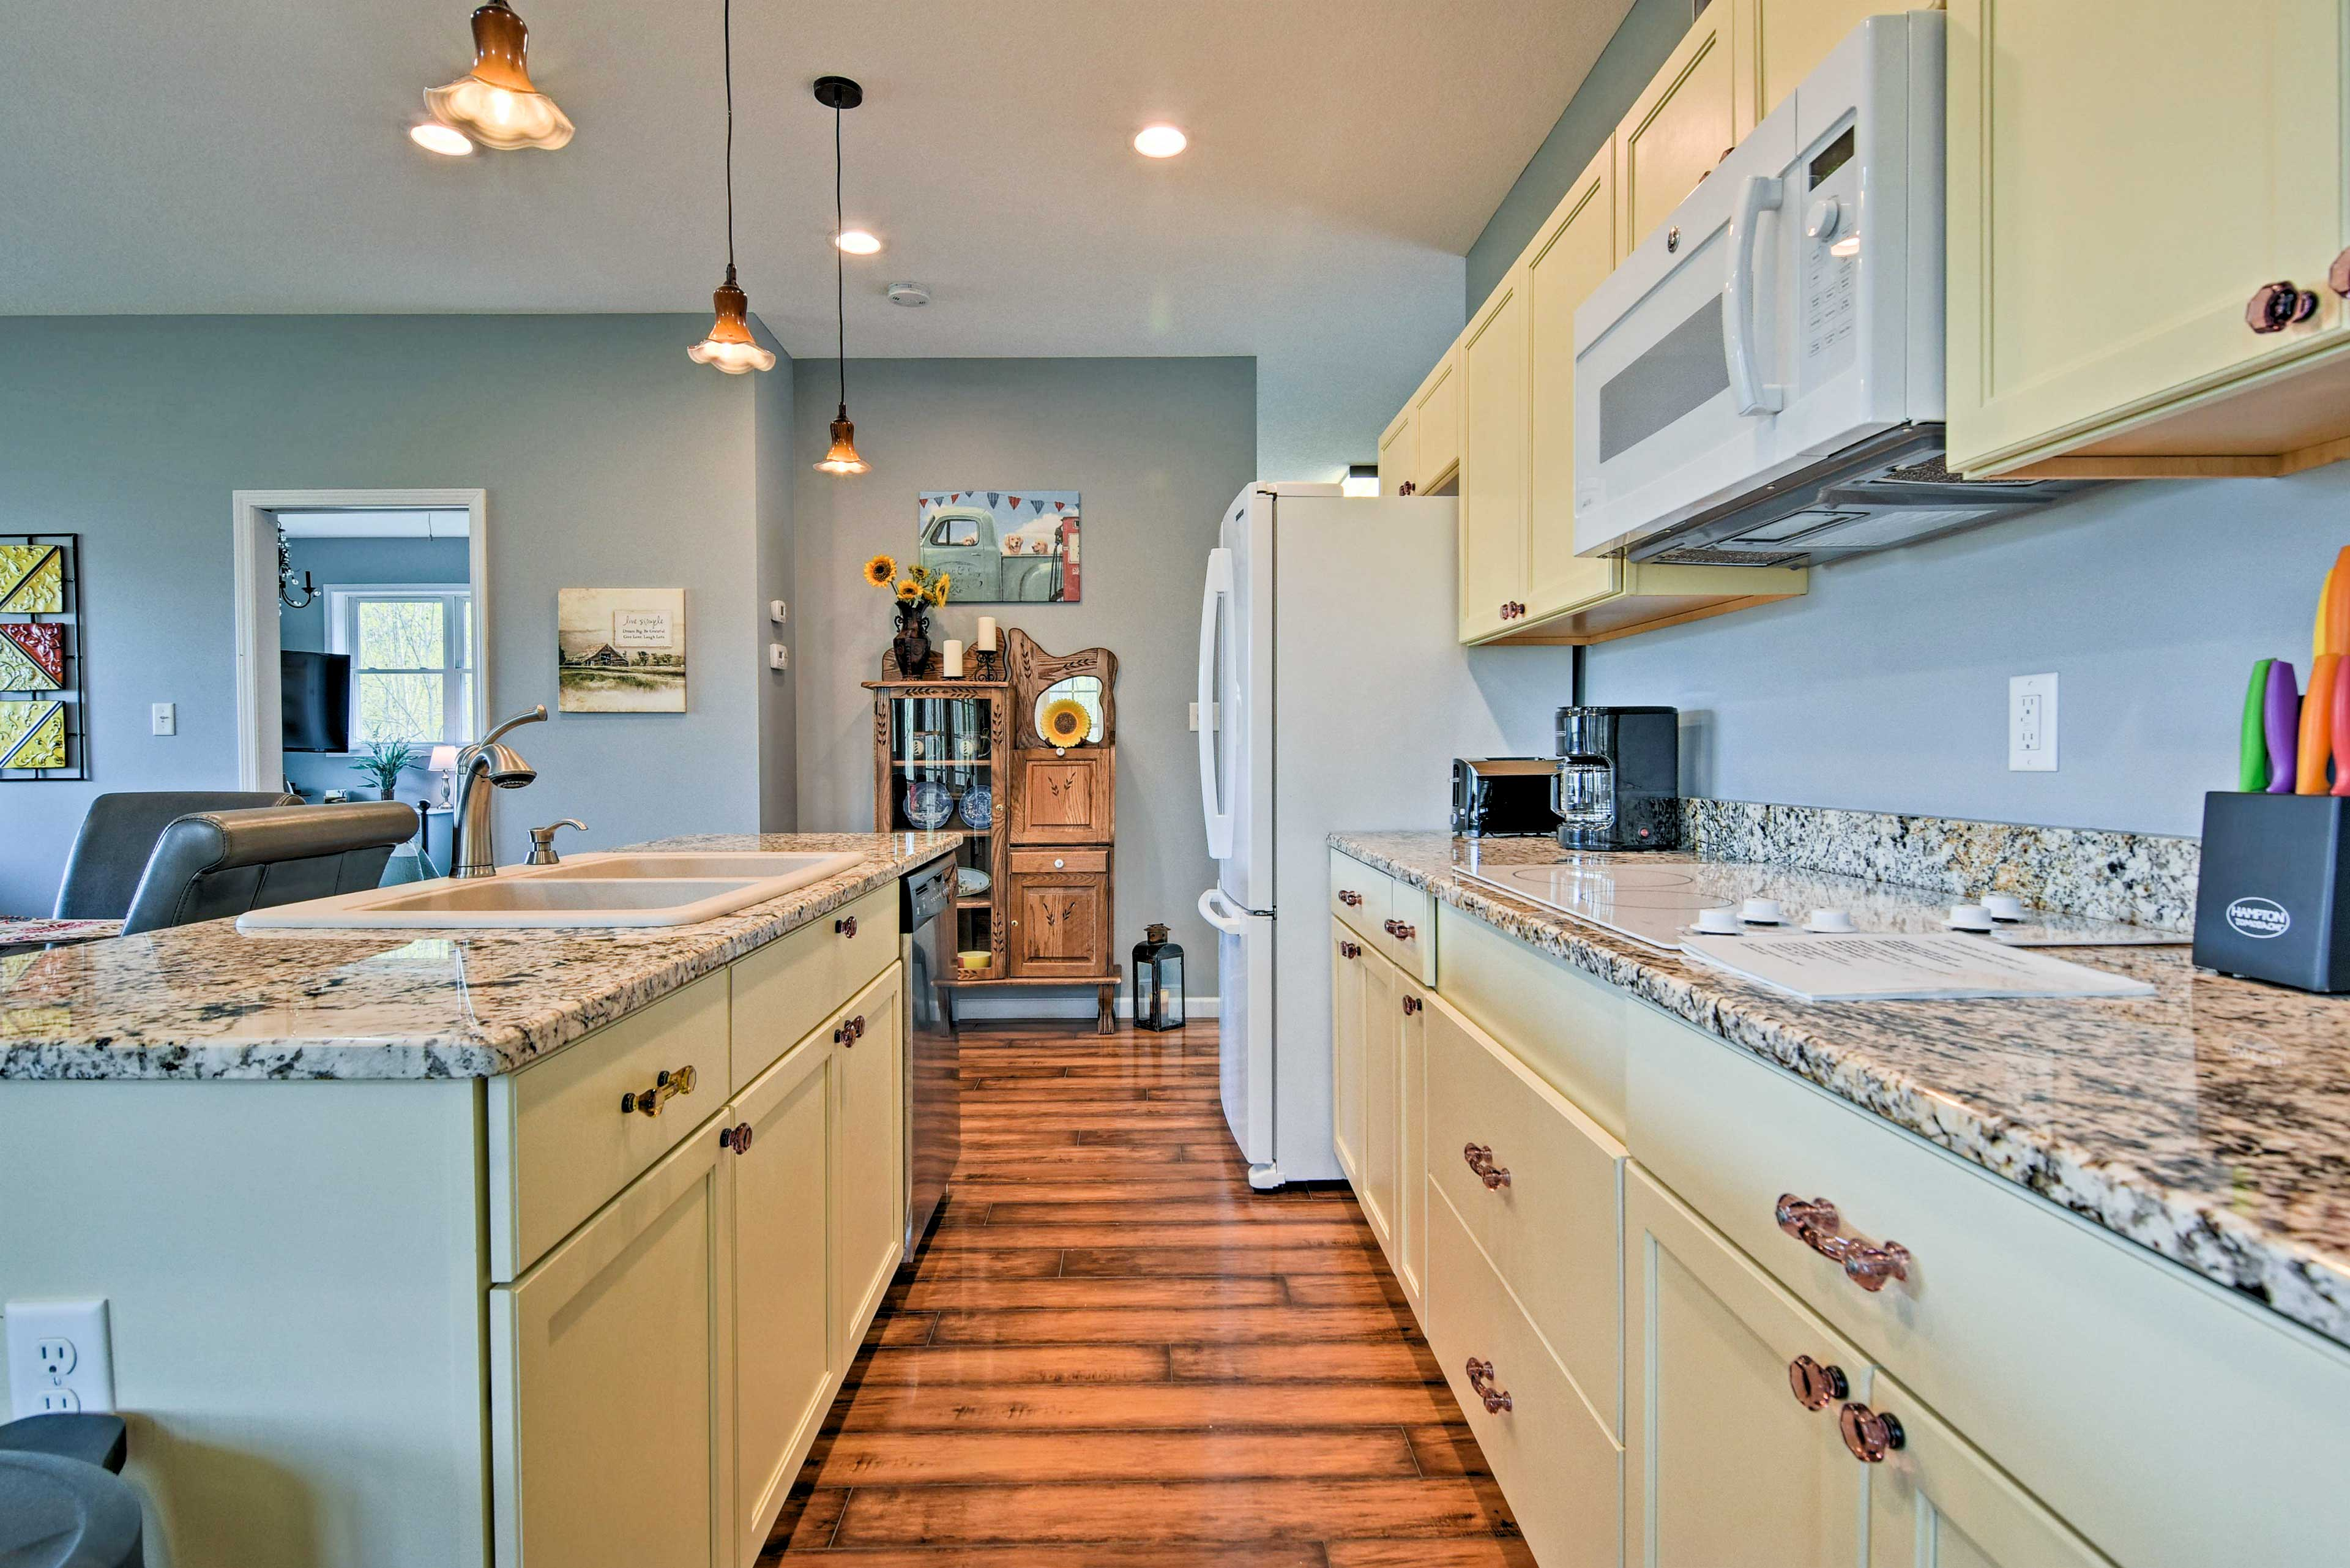 Cooking for 4 is a cakewalk in this well-equipped kitchen.